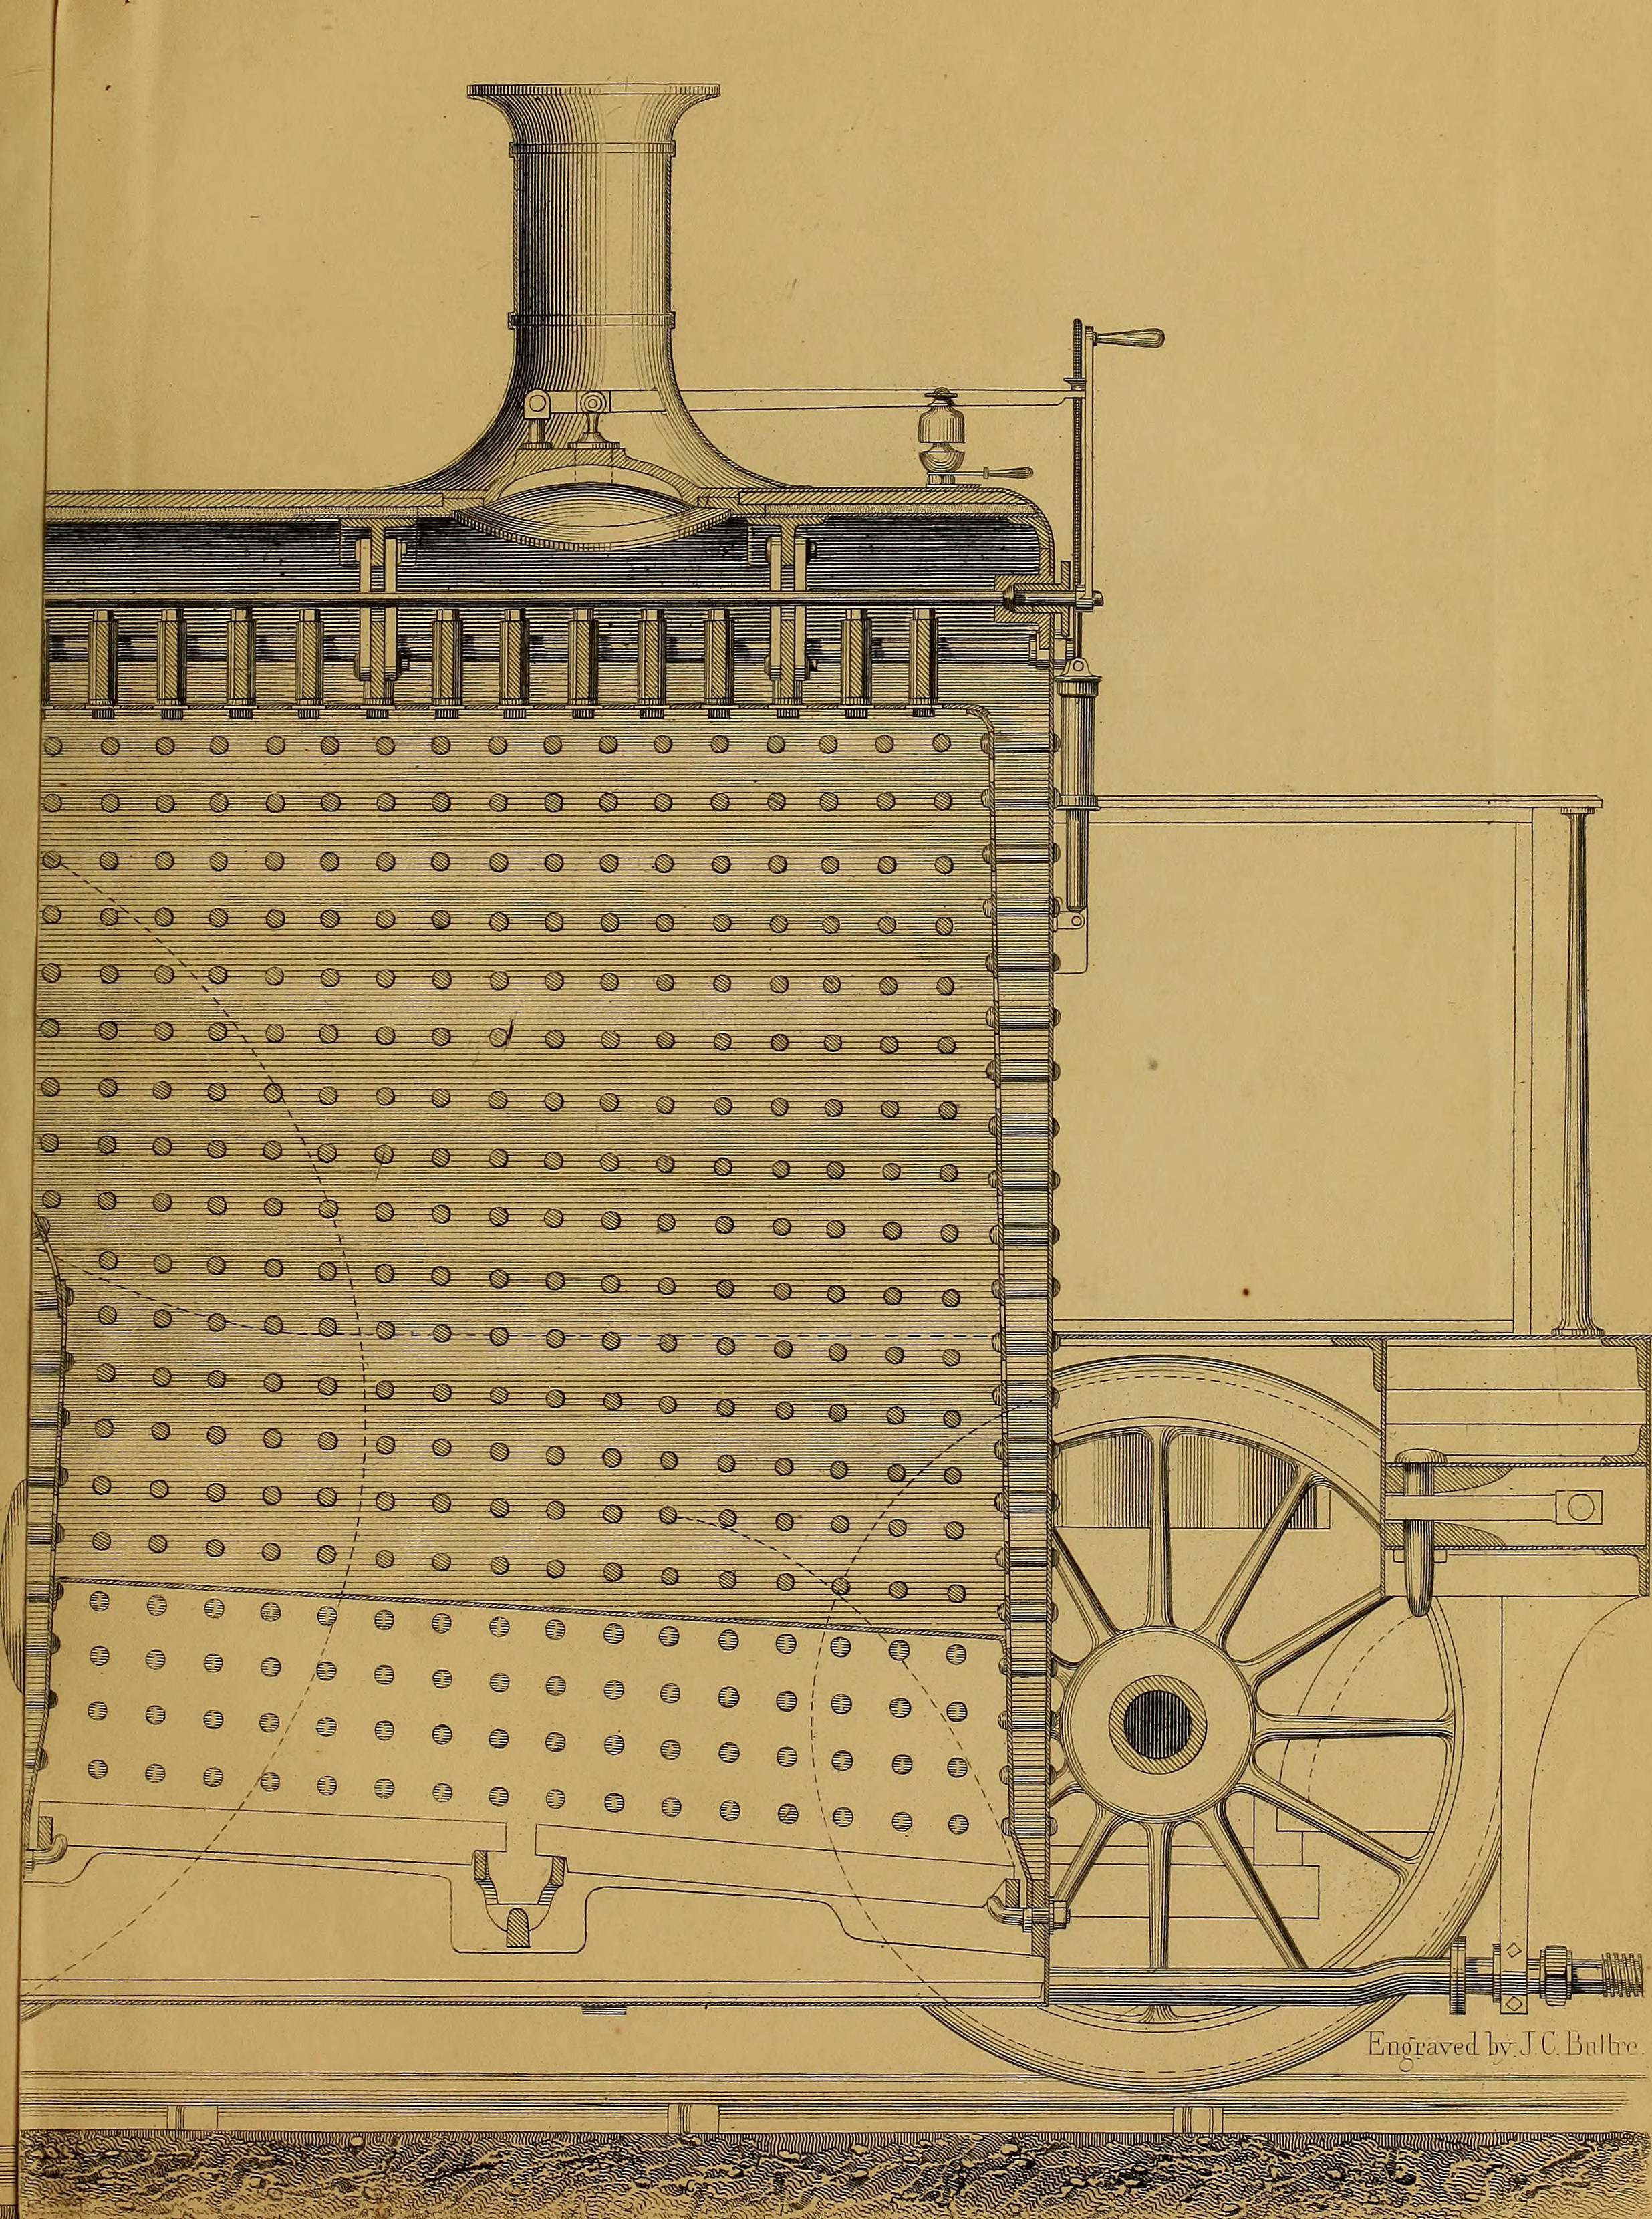 Architectural Drawing Course file:the practical draughtsman's book of industrial design, and